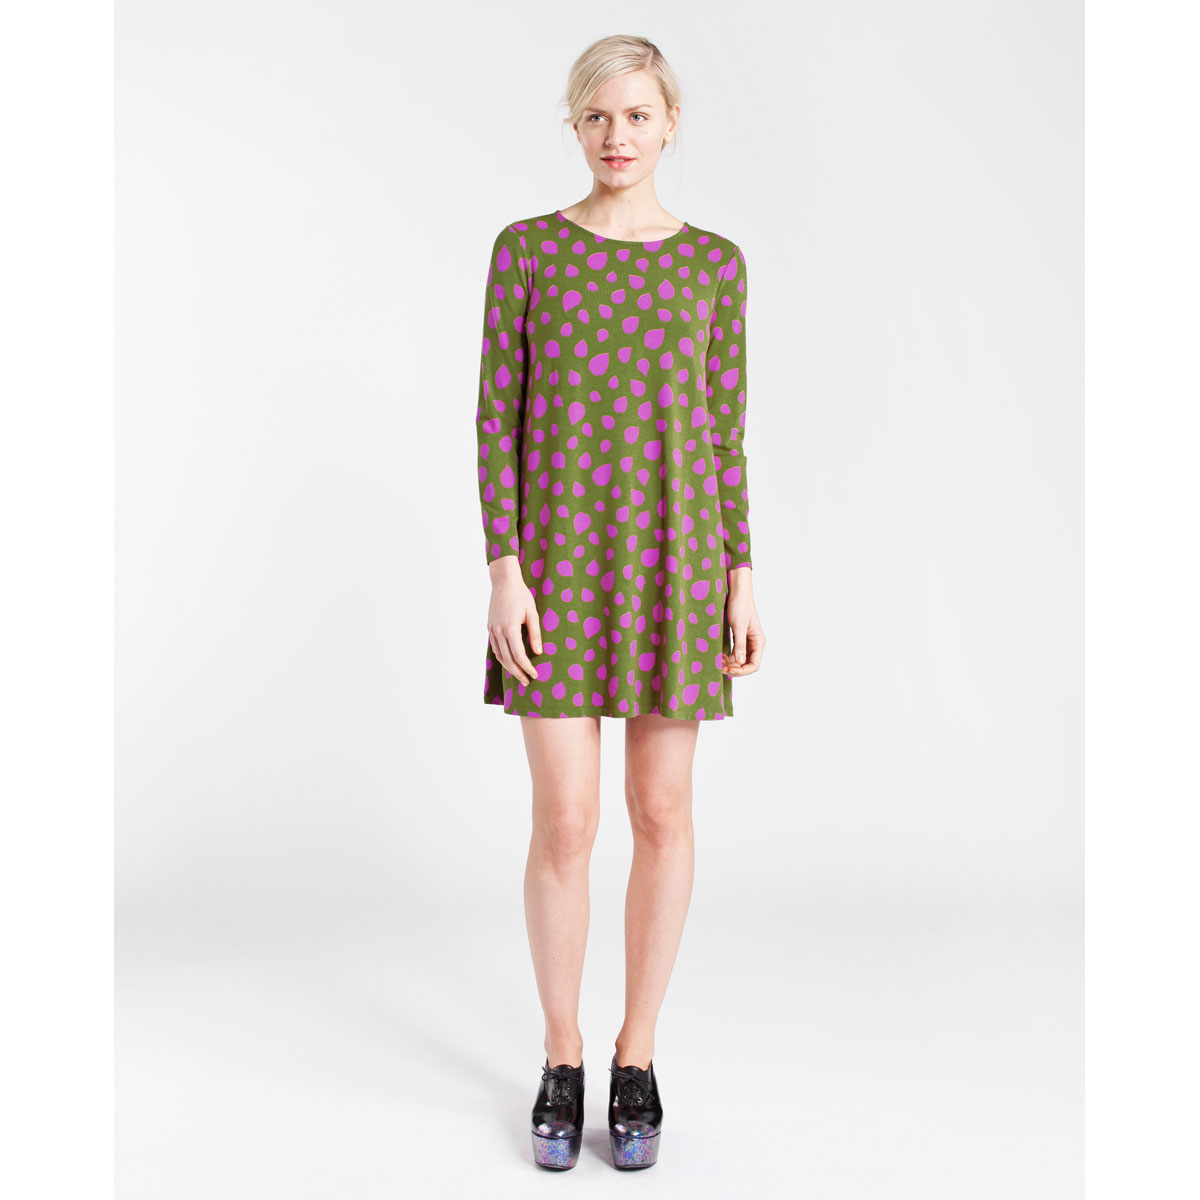 Marimekko is a Finnish textile and clothing design house renowned for its original prints and colours since The company designs and manufactures high-quality clothing, interior decoration textiles, bags and other accessories.